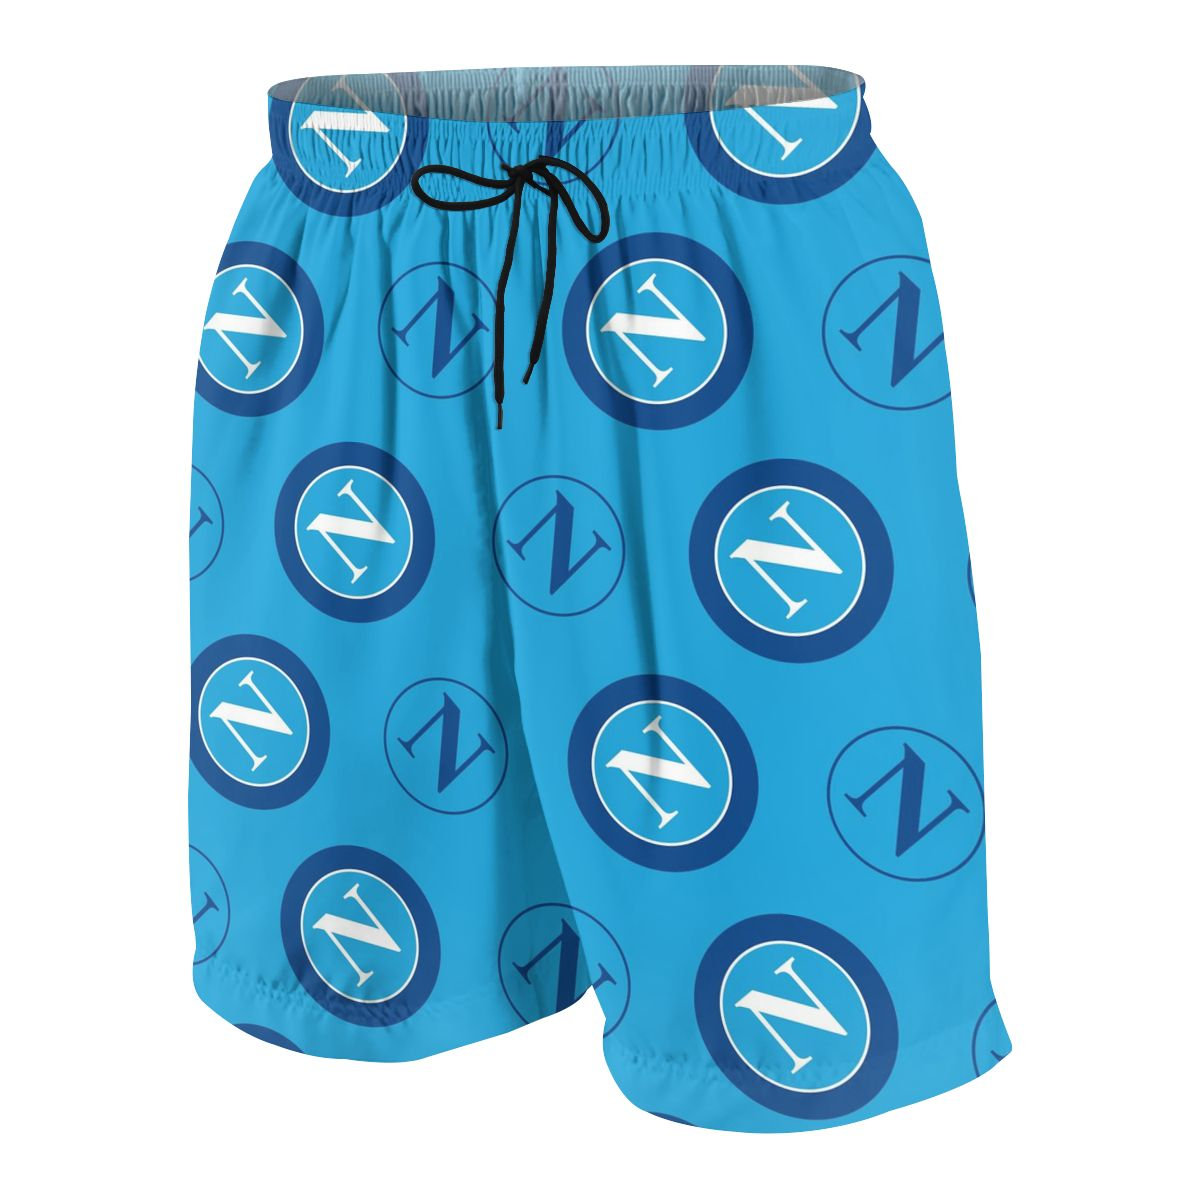 SSC Napoli Summer Young Shorts Cotton For Beach Short Sports Pants 3D Print Elastic Fashion Wild Leisure